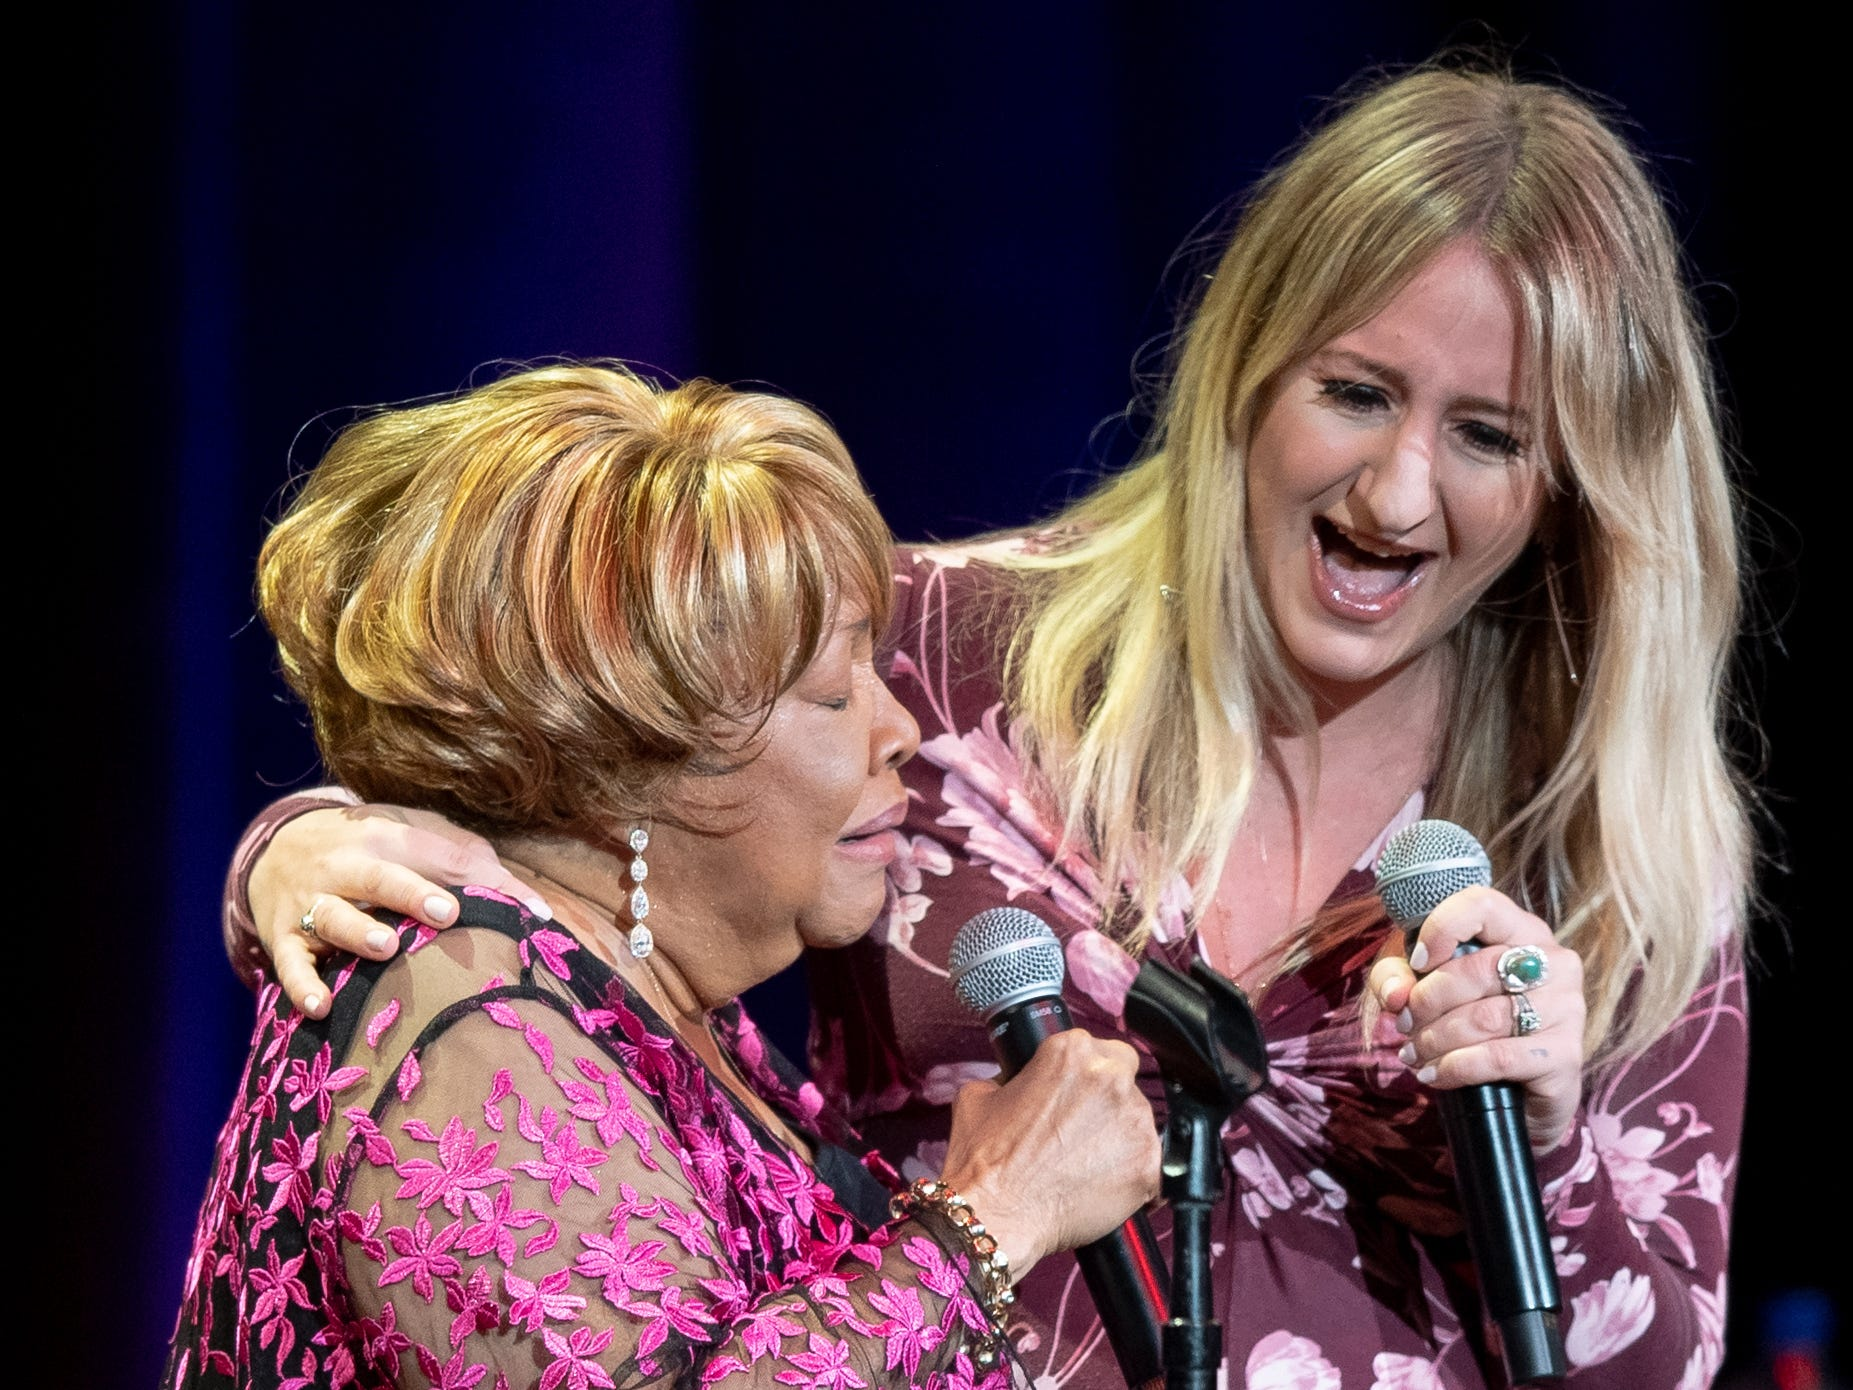 Mavis Staples performs with Margo Price during the Mavis and Friends concert at the Ryman Auditorium in Nashville, Tenn., Wednesday, May 15, 2019.